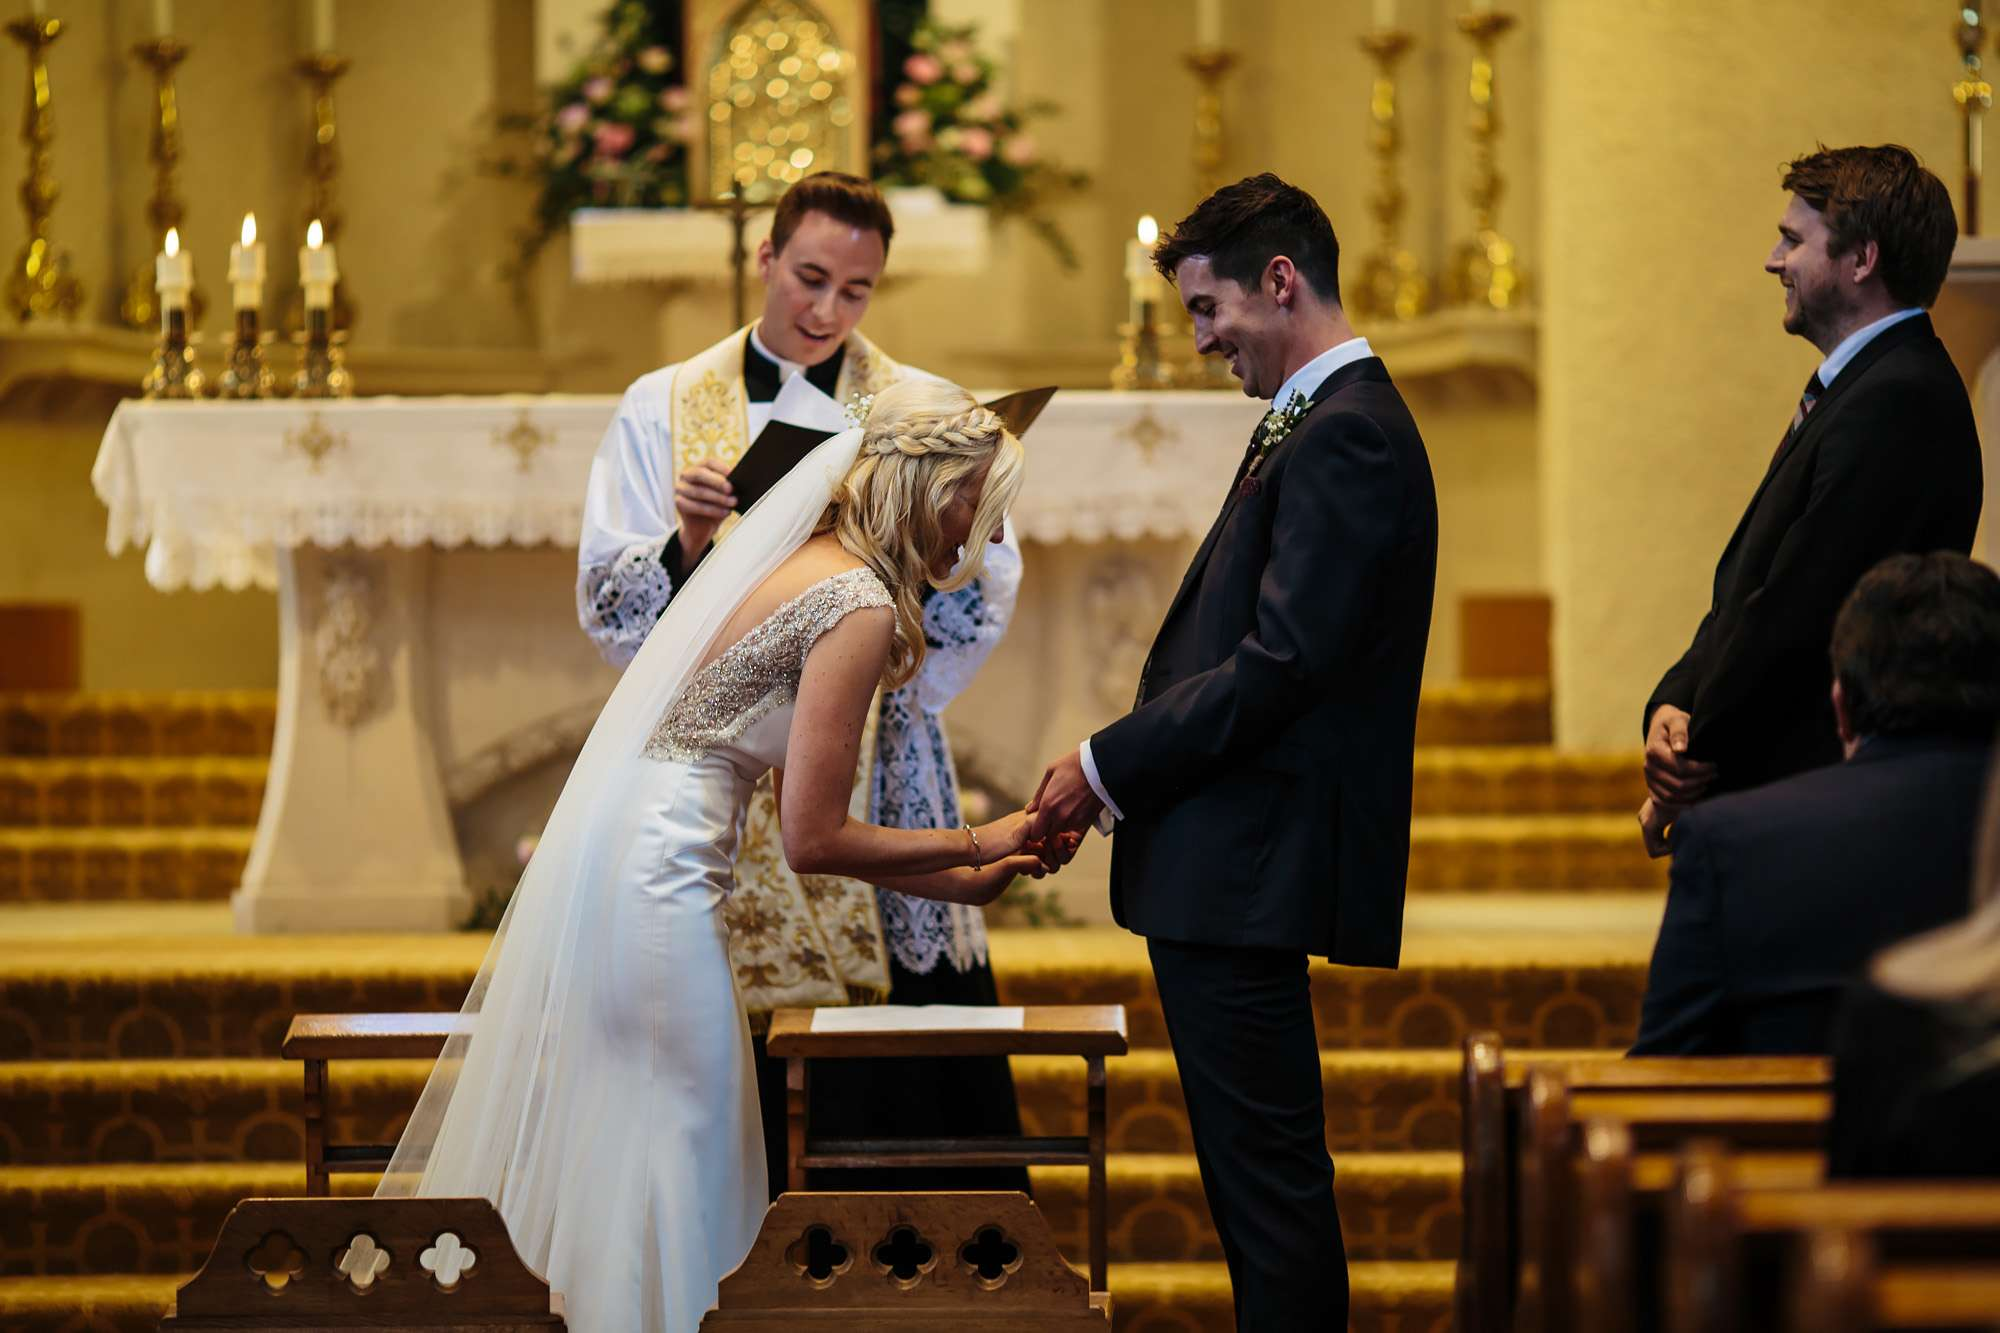 Bride and groom at their church wedding ceremony in Leeds